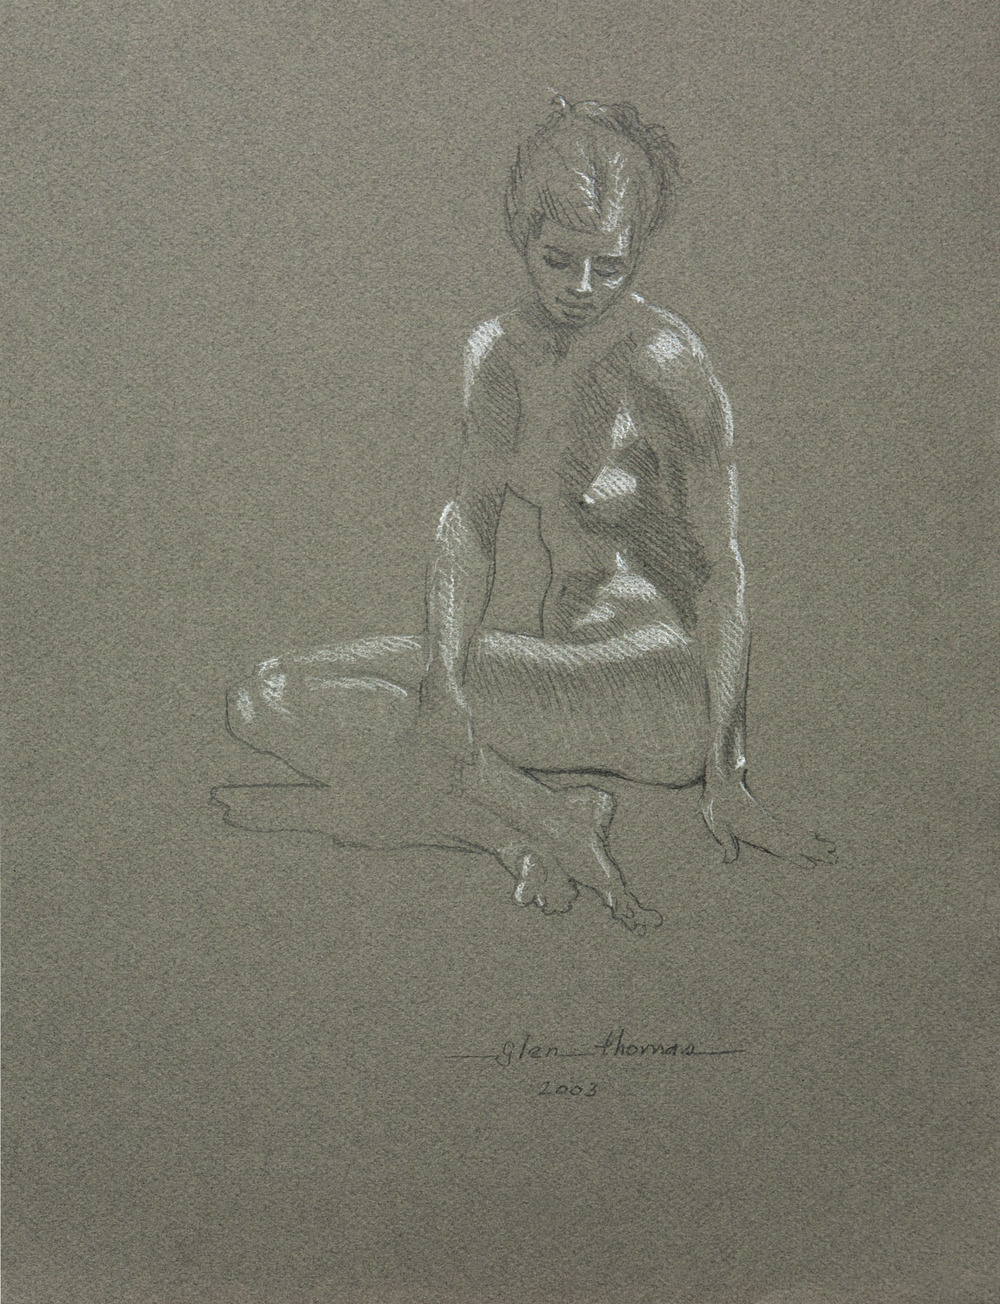 Seated Figure, right hand across knee